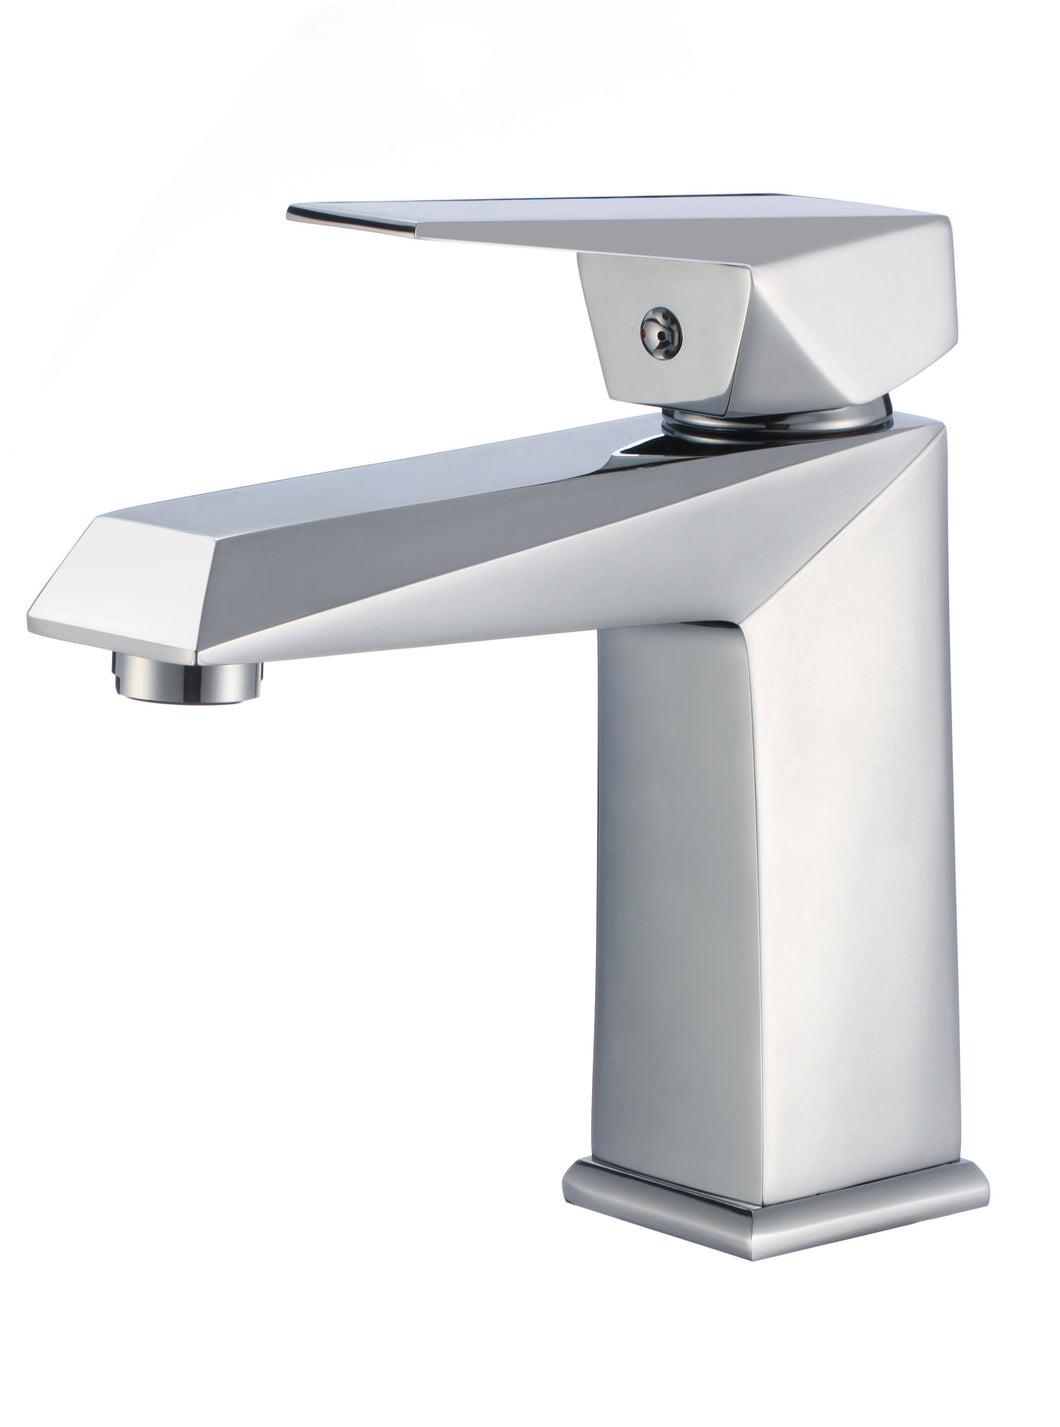 Artevit Immersione - Single Hole Bathroom Faucet -  Bagnotti USA Luxury European Bathroom Furniture